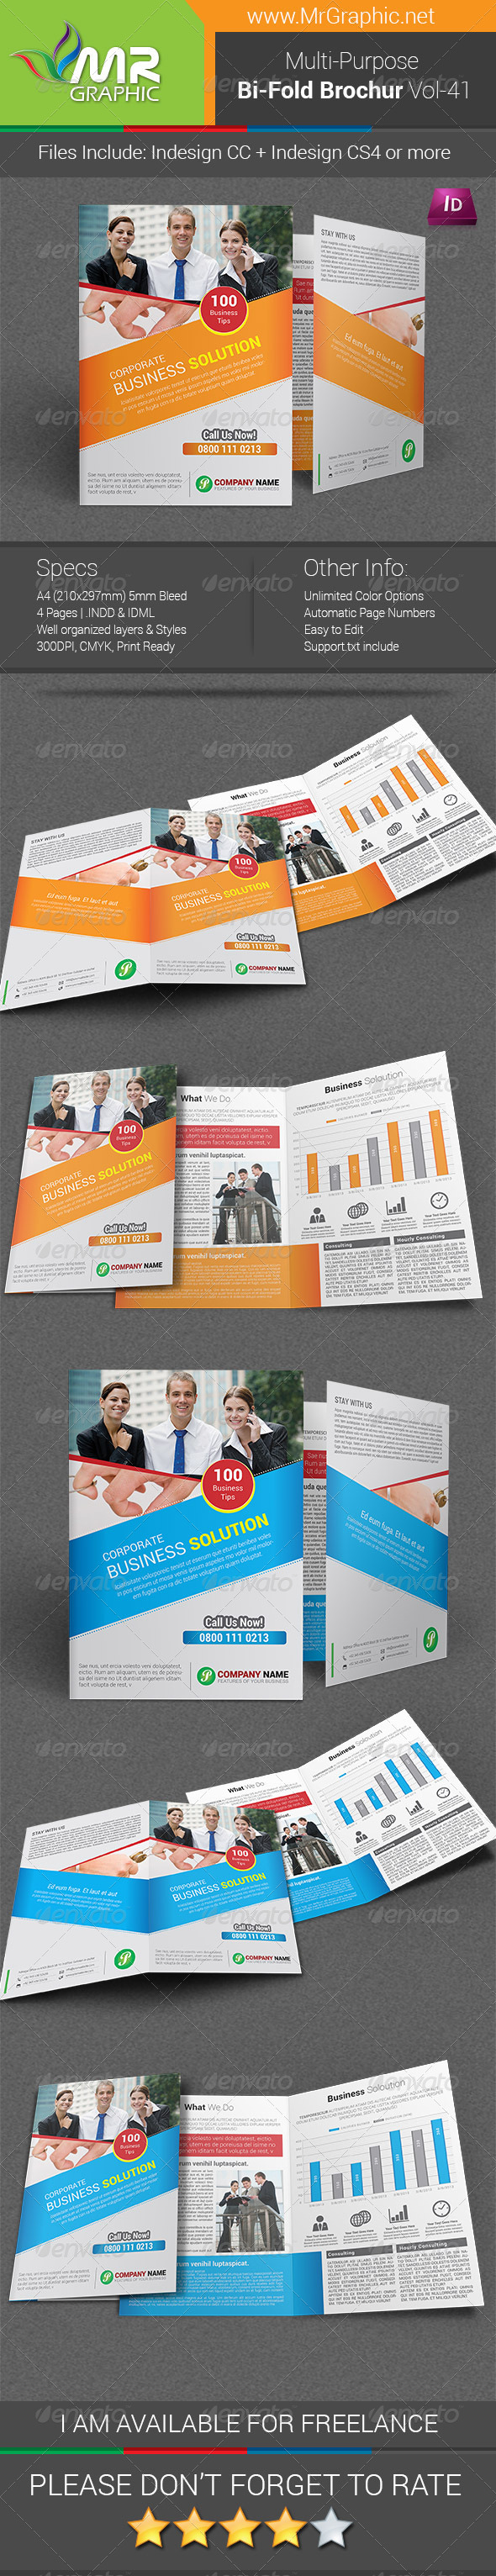 GraphicRiver Multipurpose Bi-fold Brochure Template Vol-41 6321917